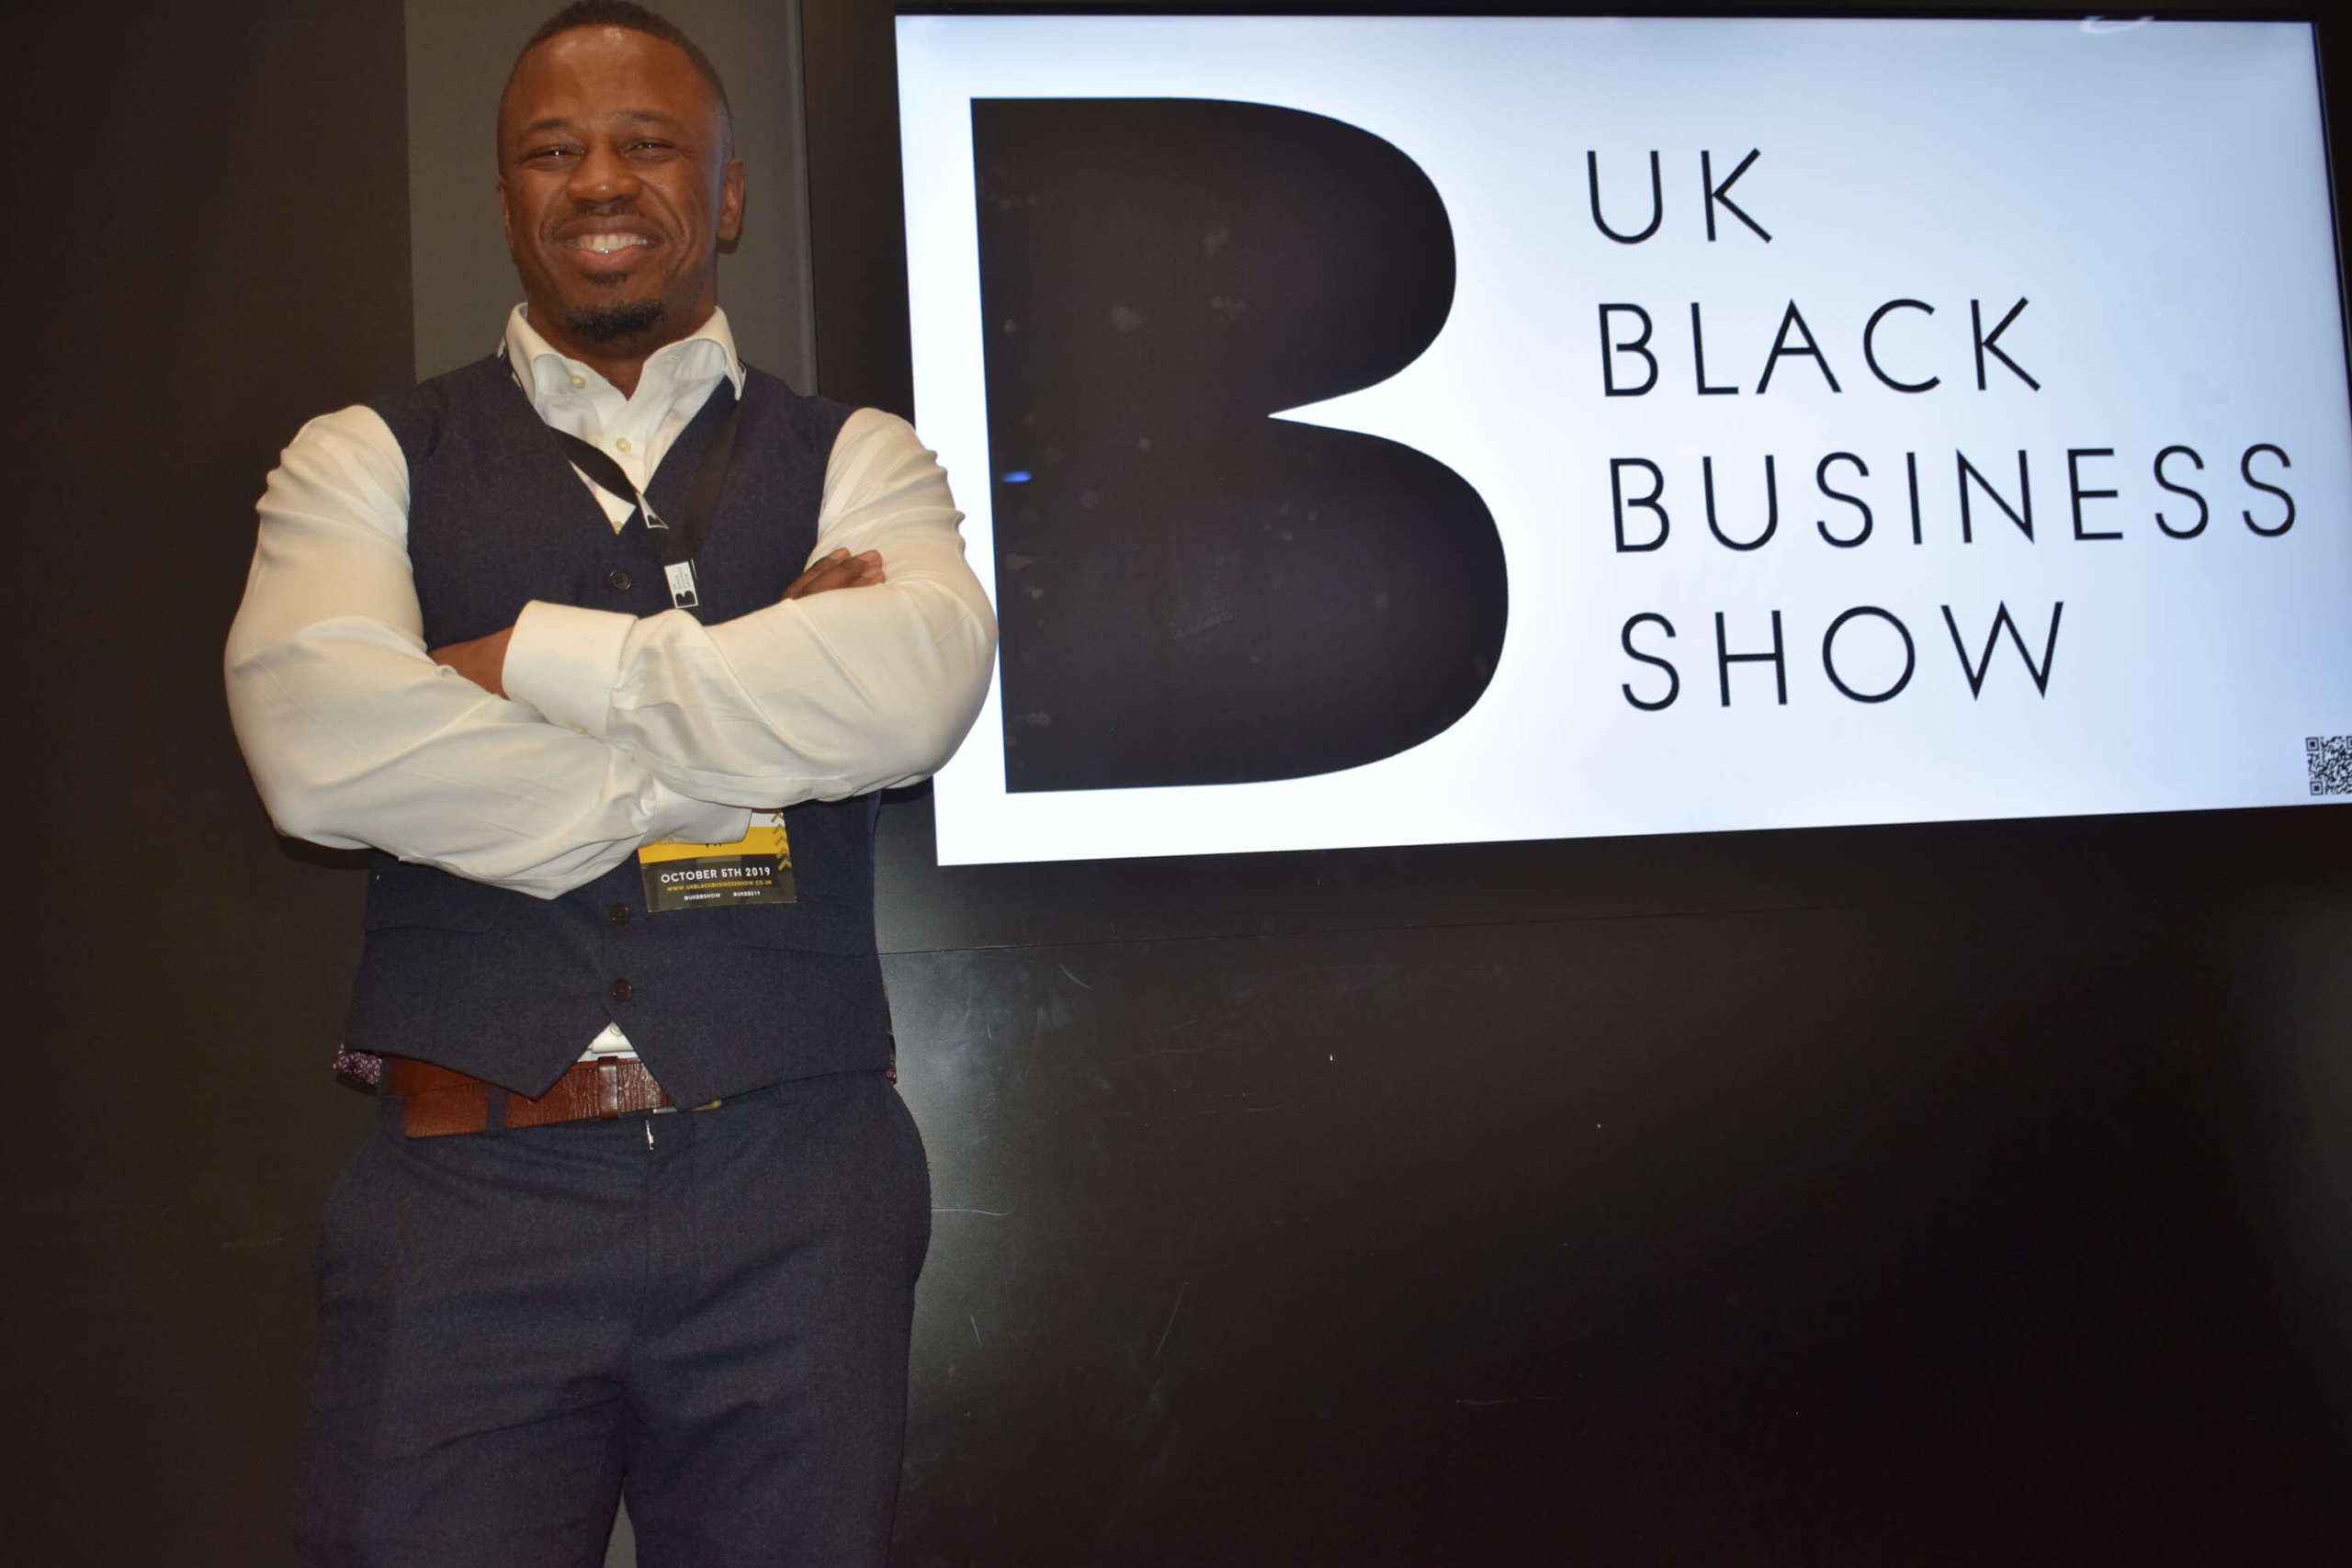 Business Start Up Seminar UK Black Business Show